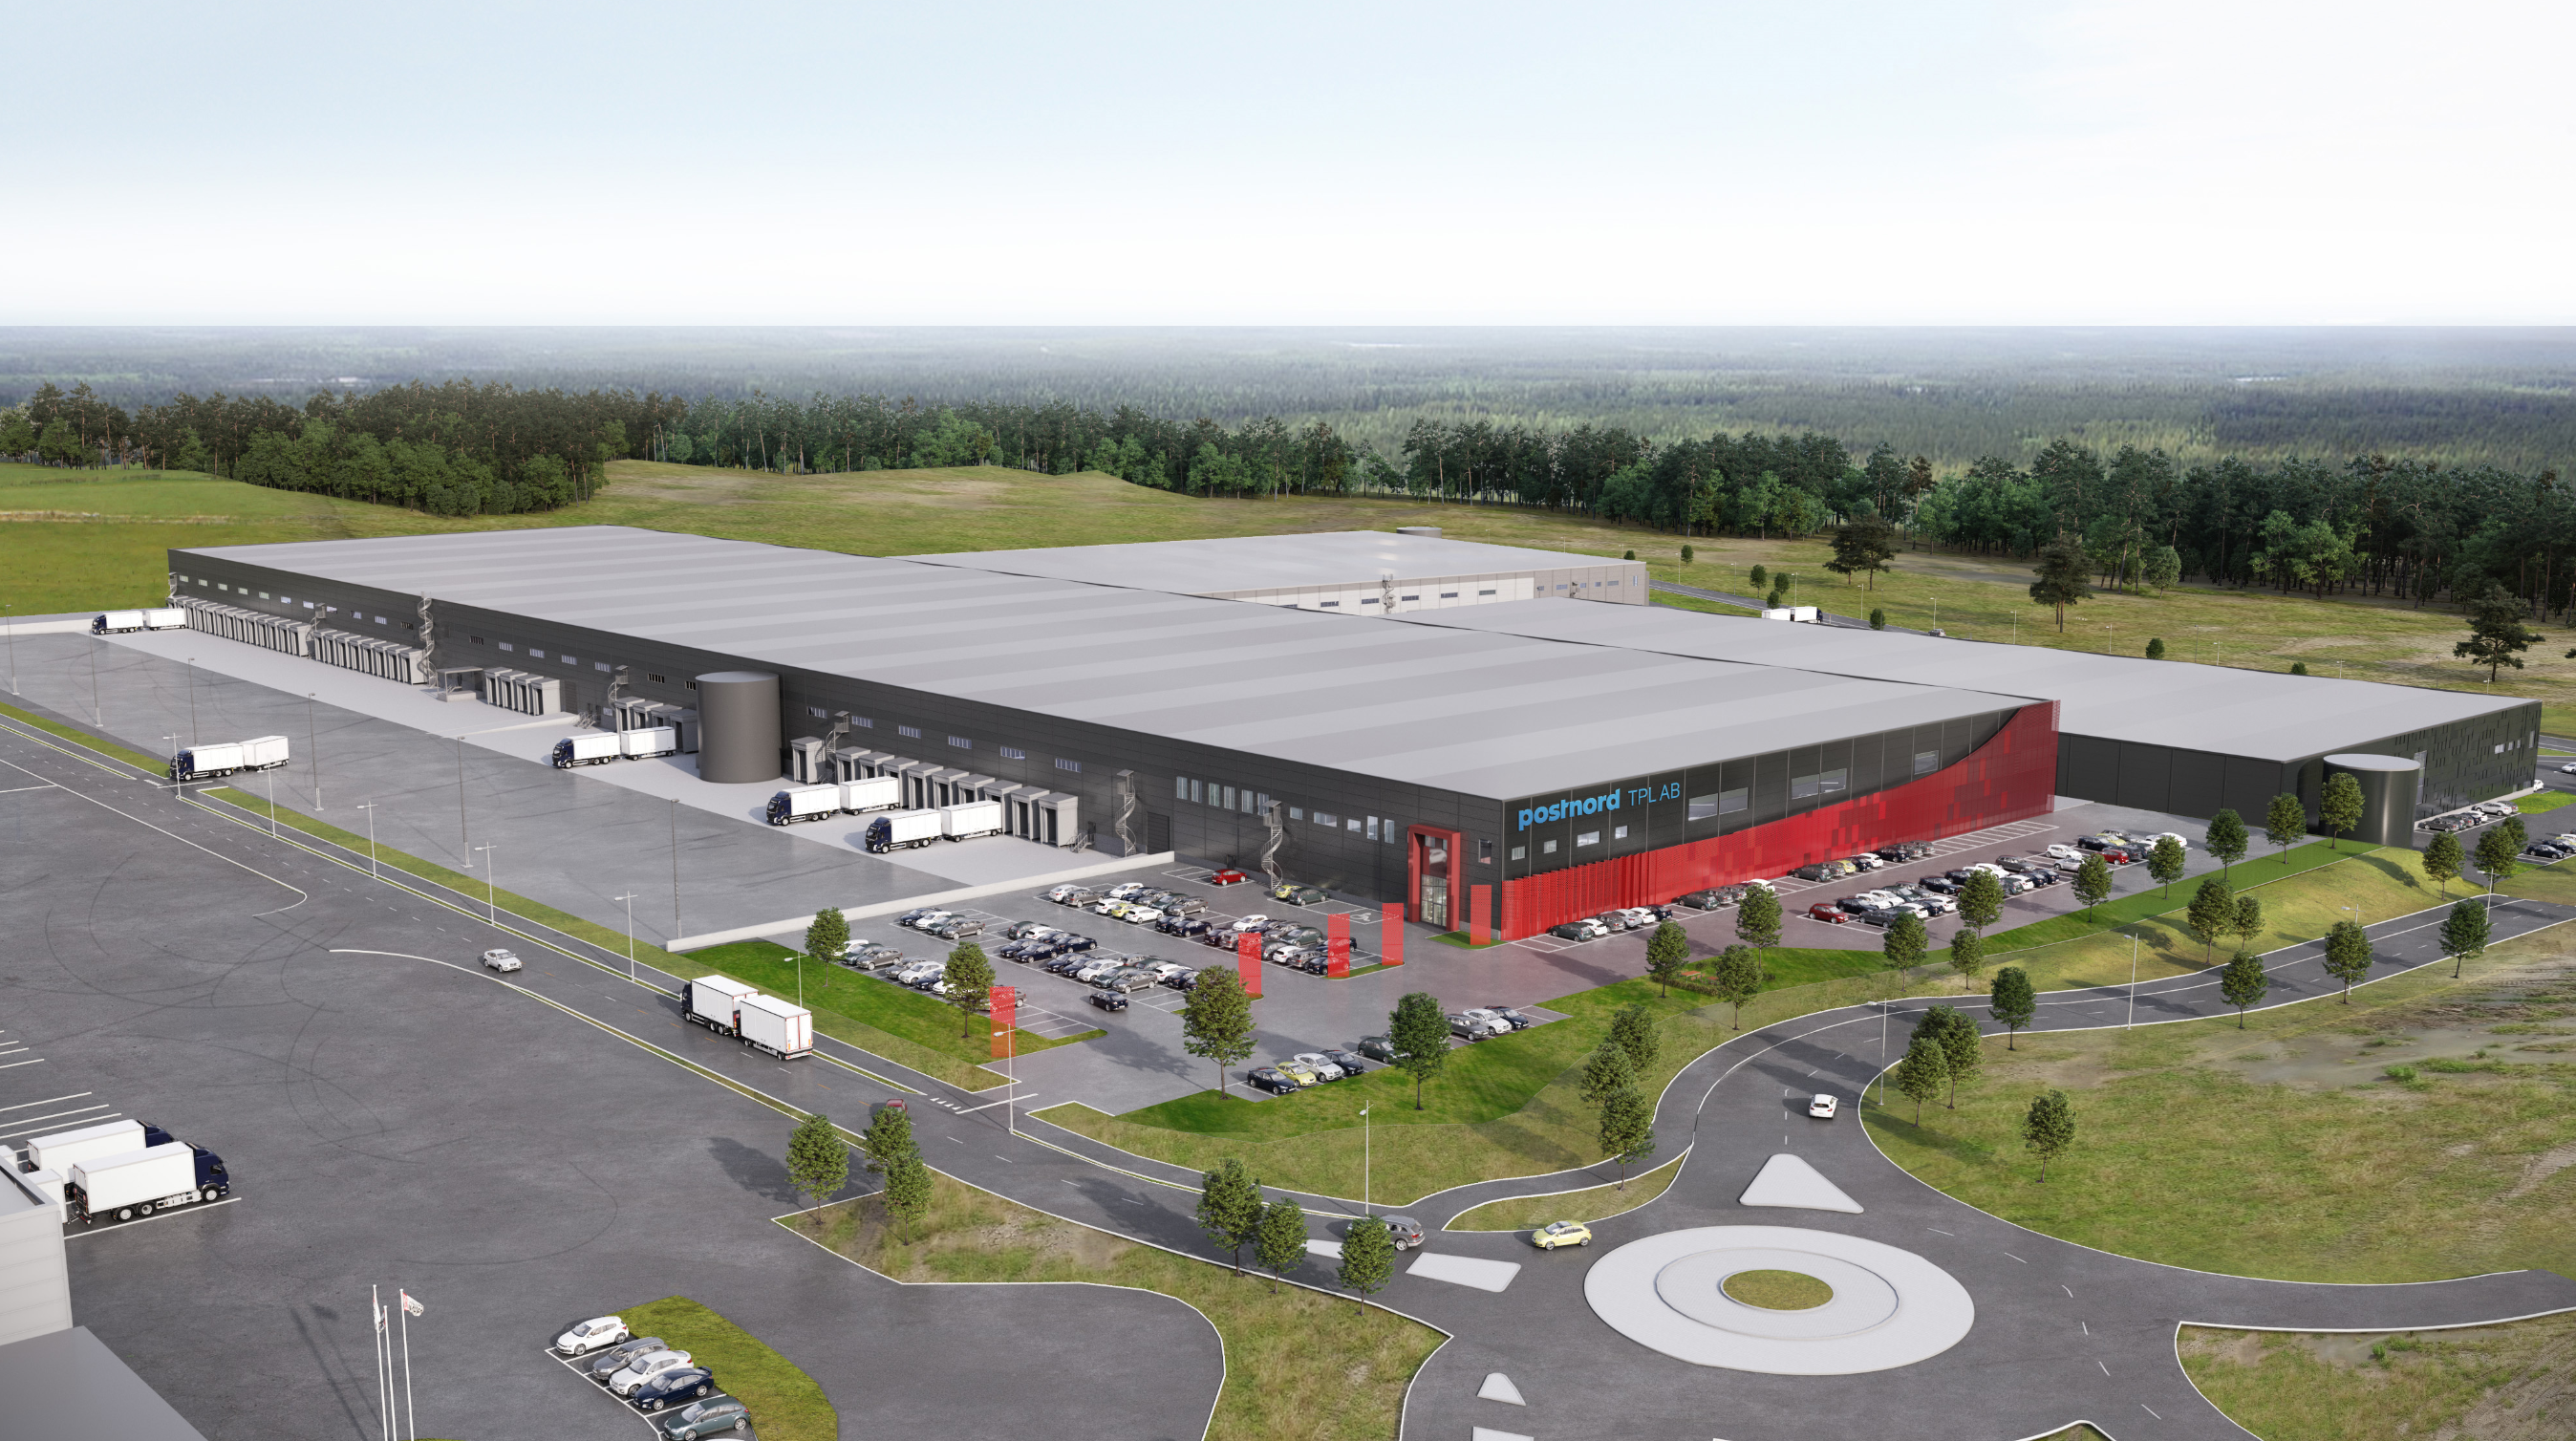 Conceptual image of the new PostNord facility